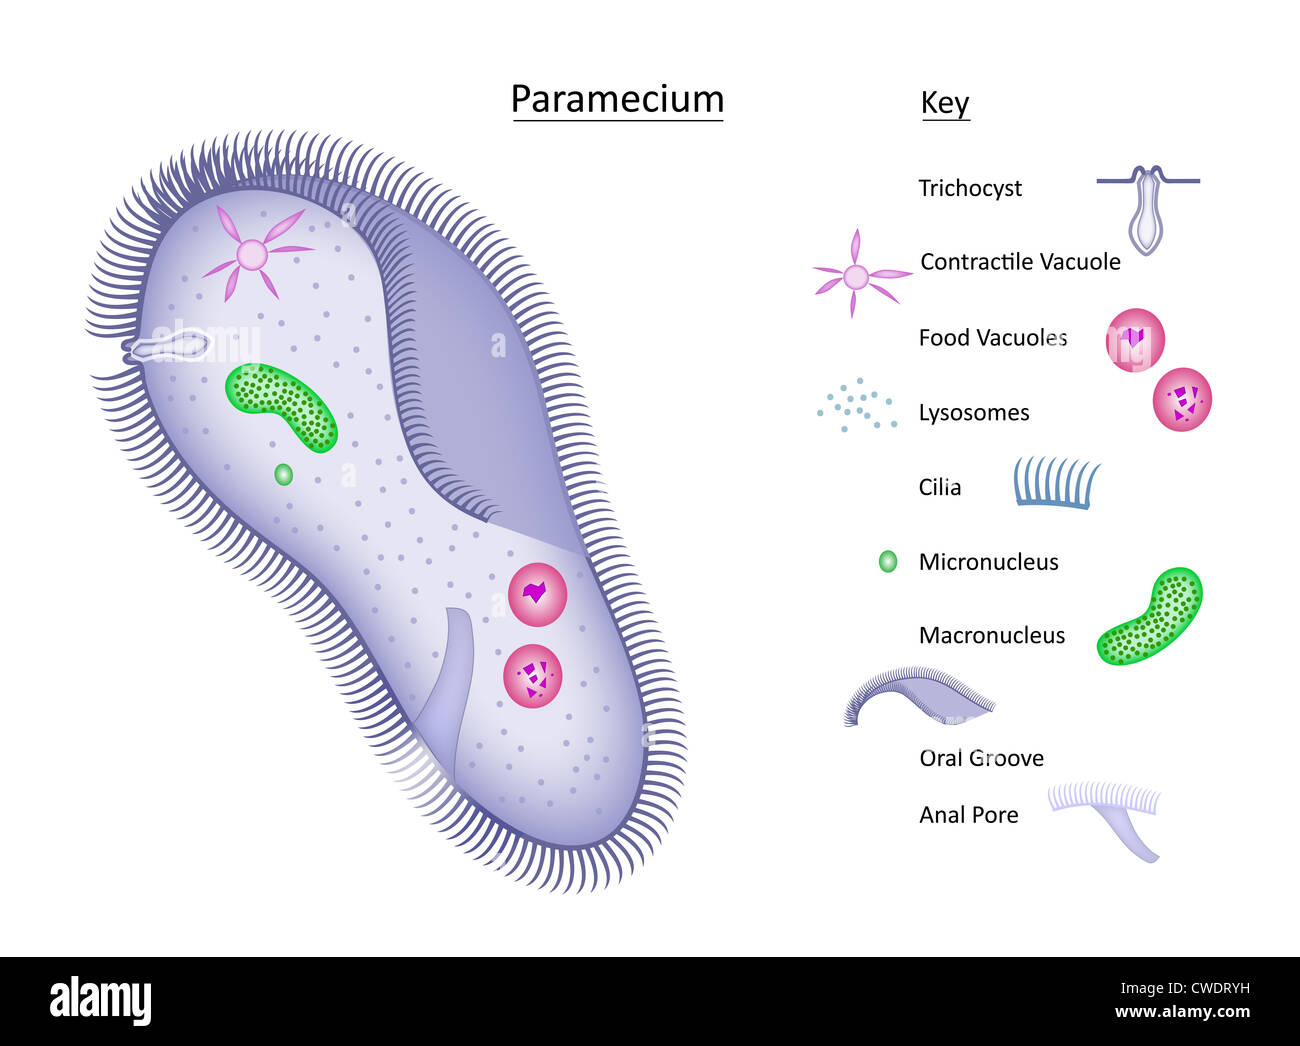 hight resolution of colorful vector illustration of a single celled paramecium with structures clearly labeled in separate key all layers labeled